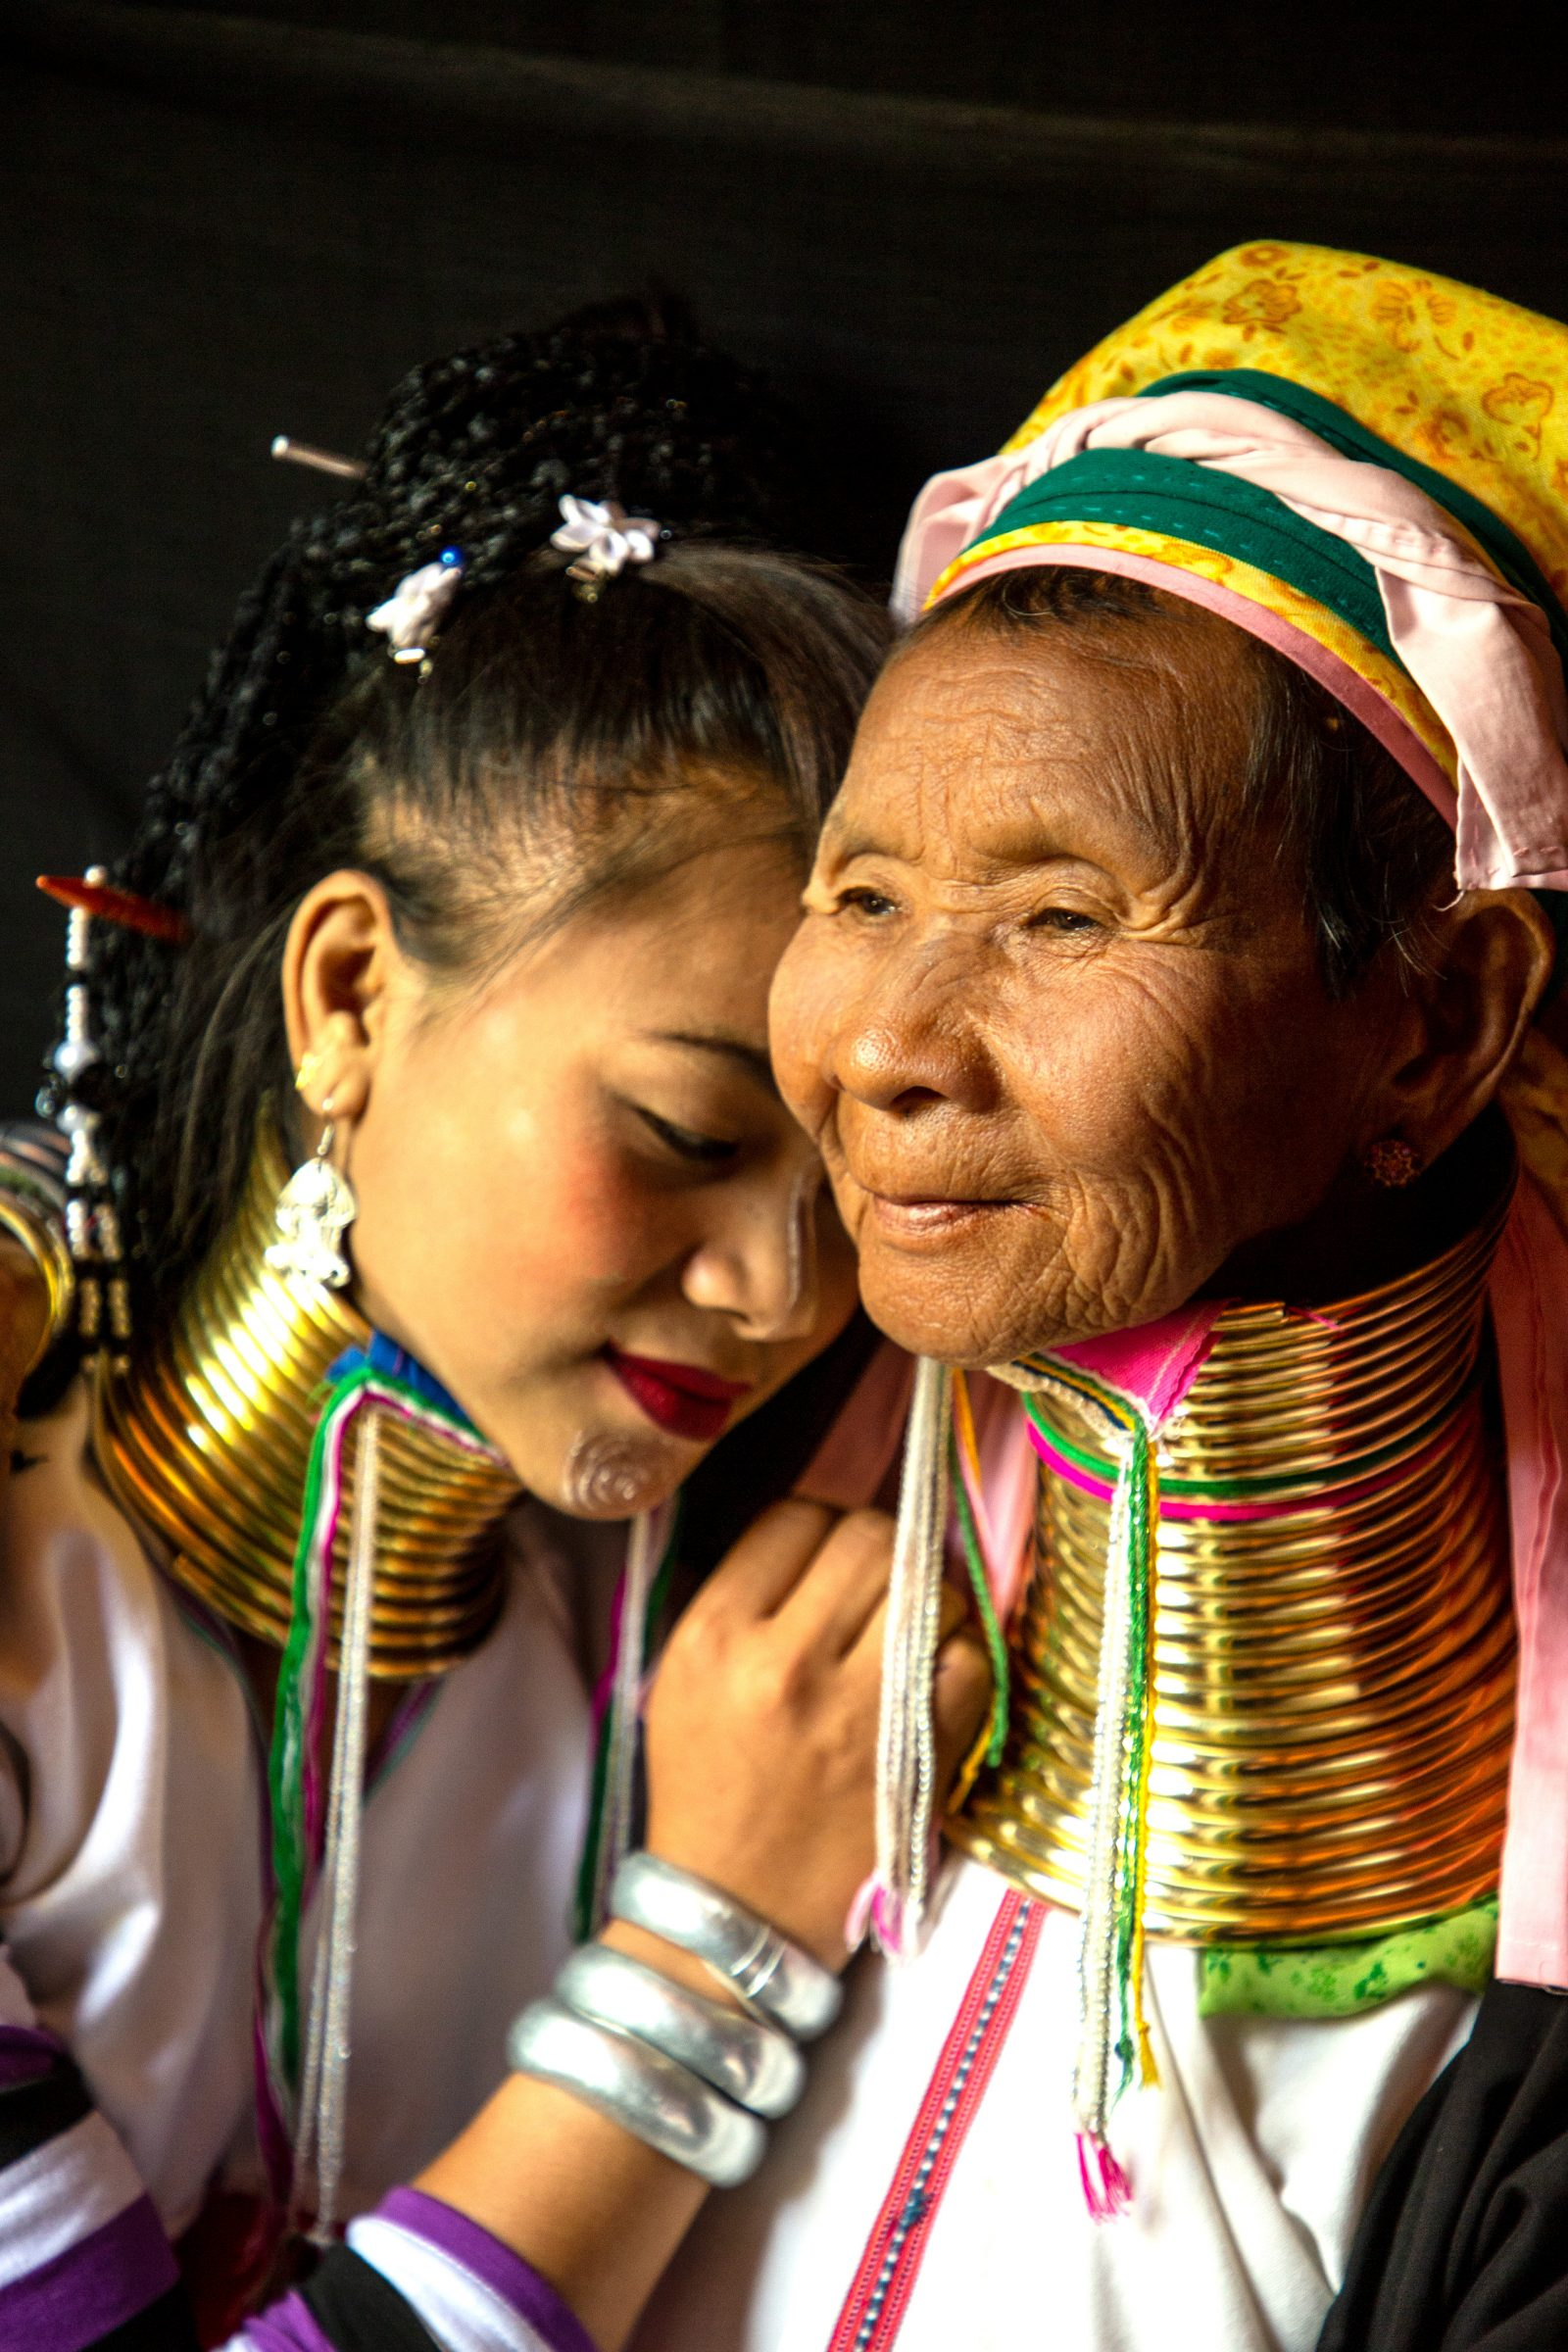 Two Ring Neck Women in Burma